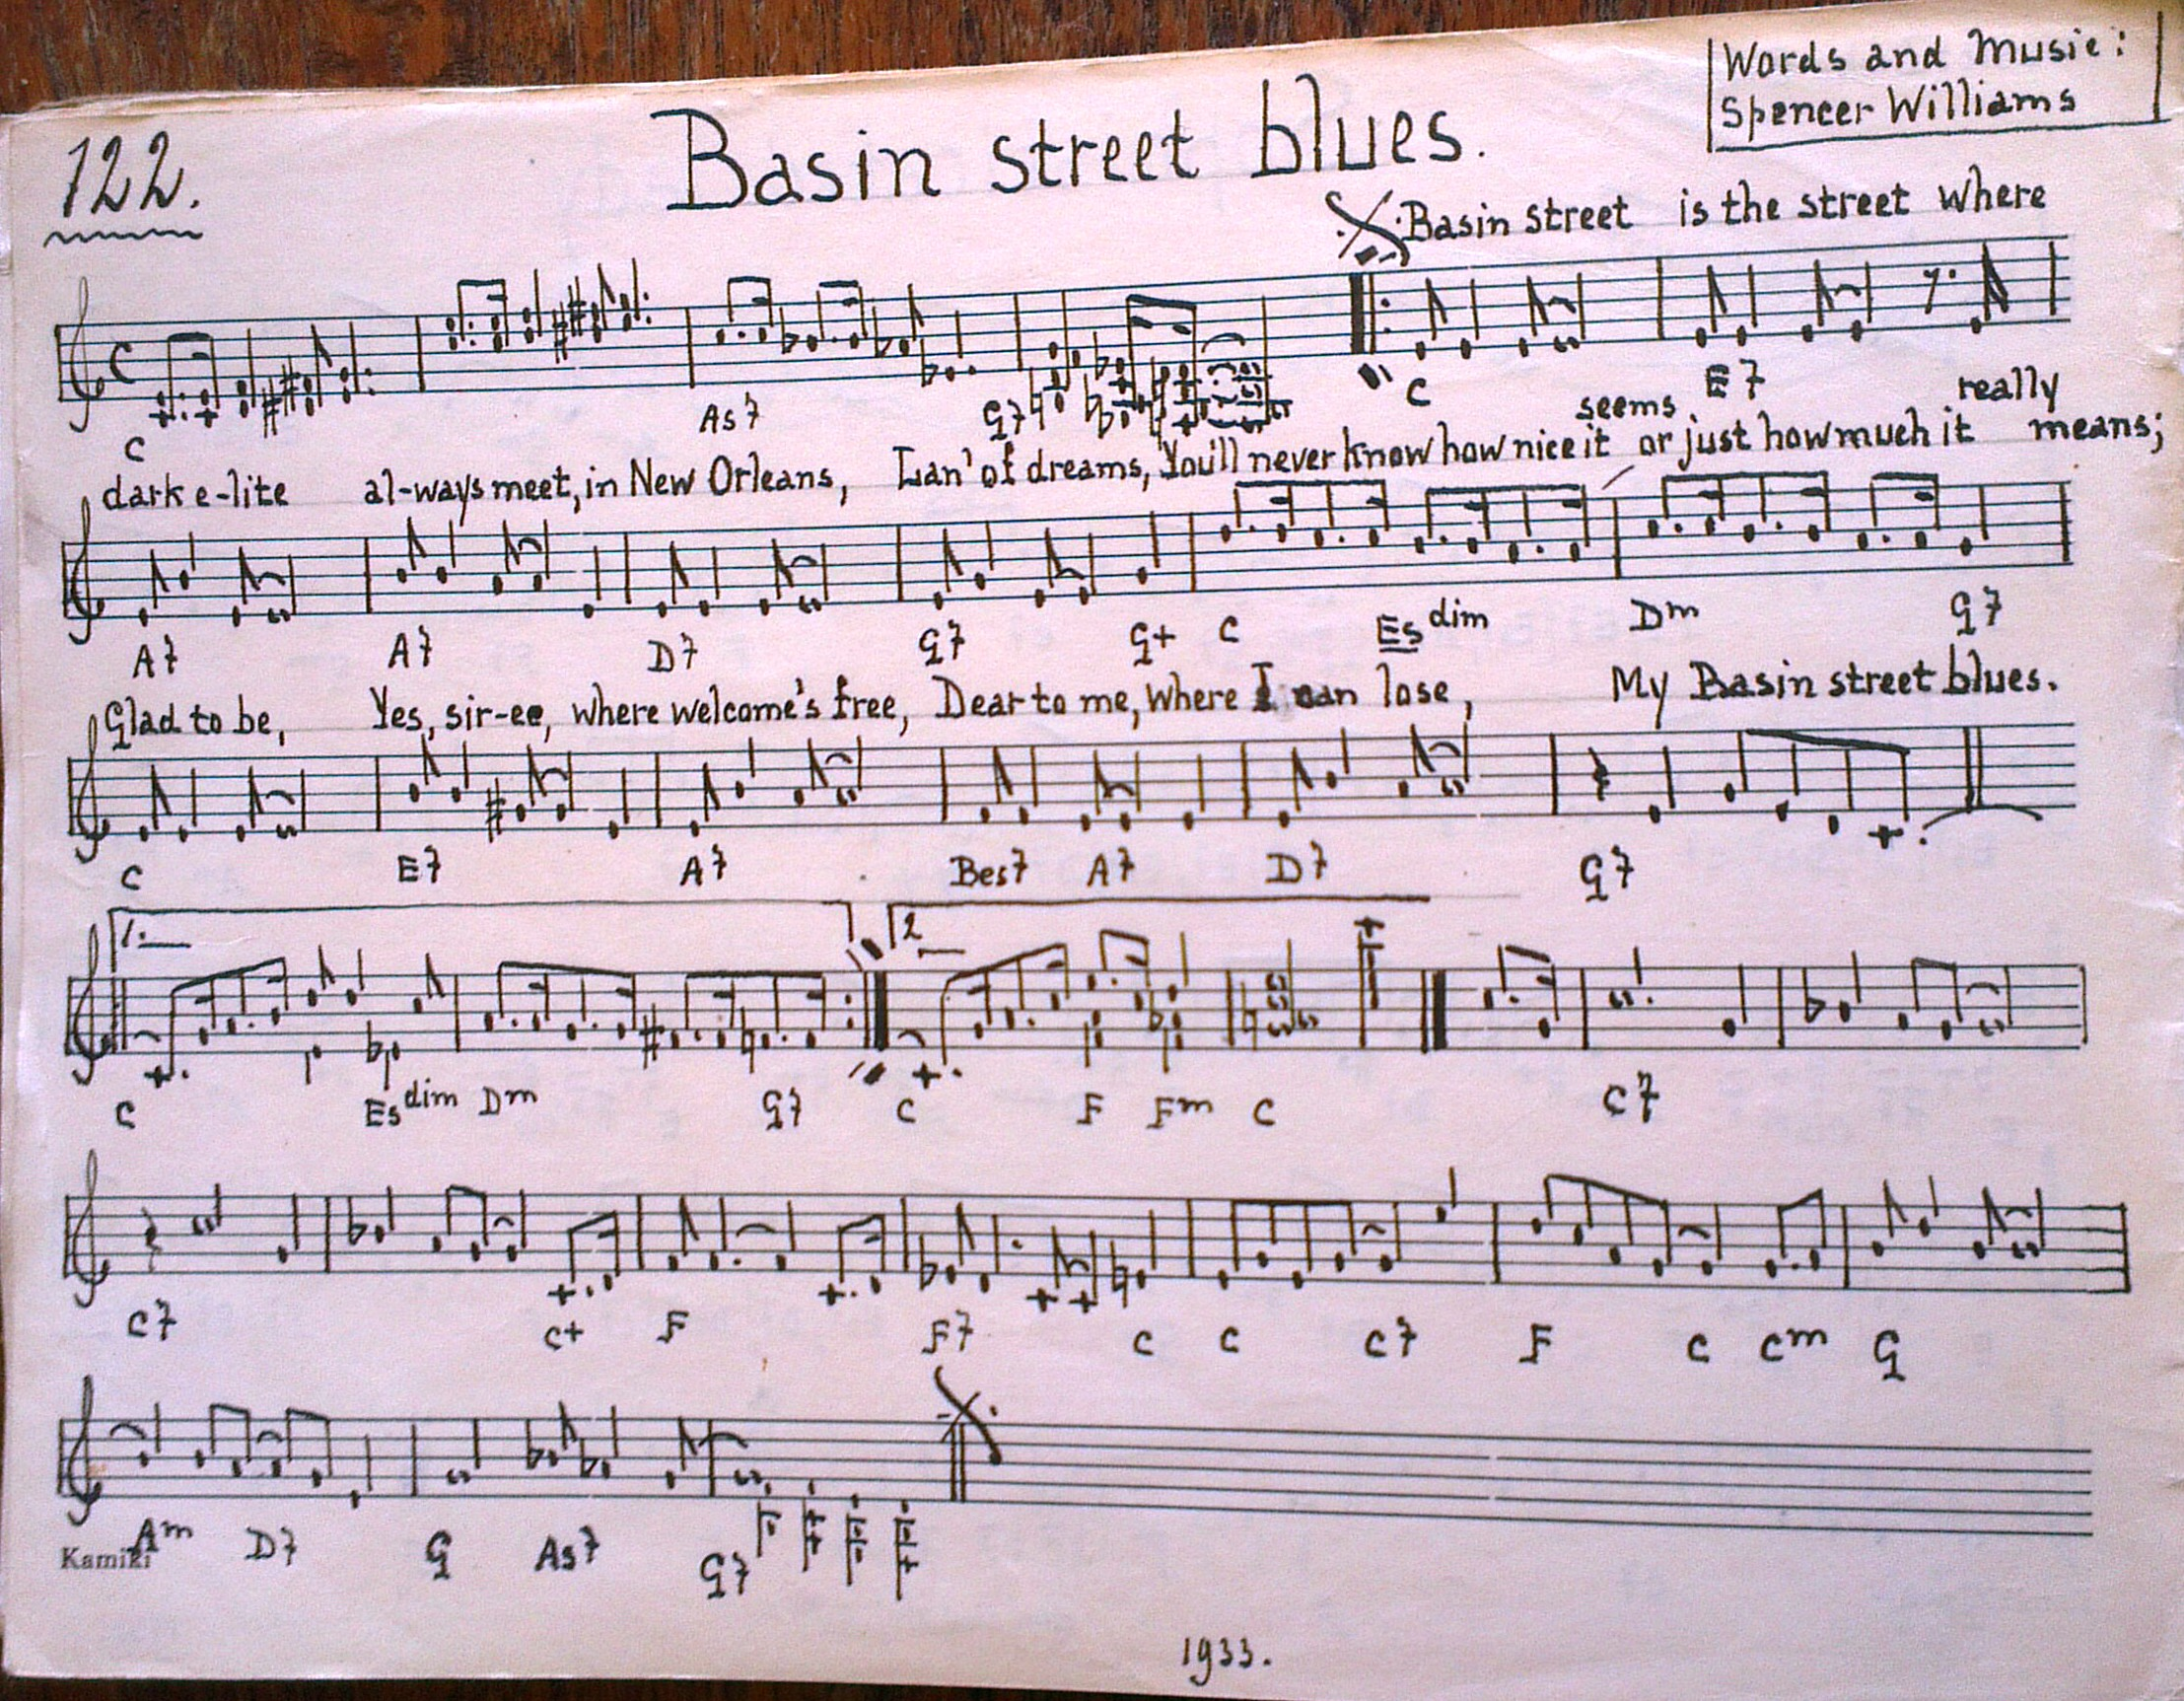 Basin Street Blues (1933)